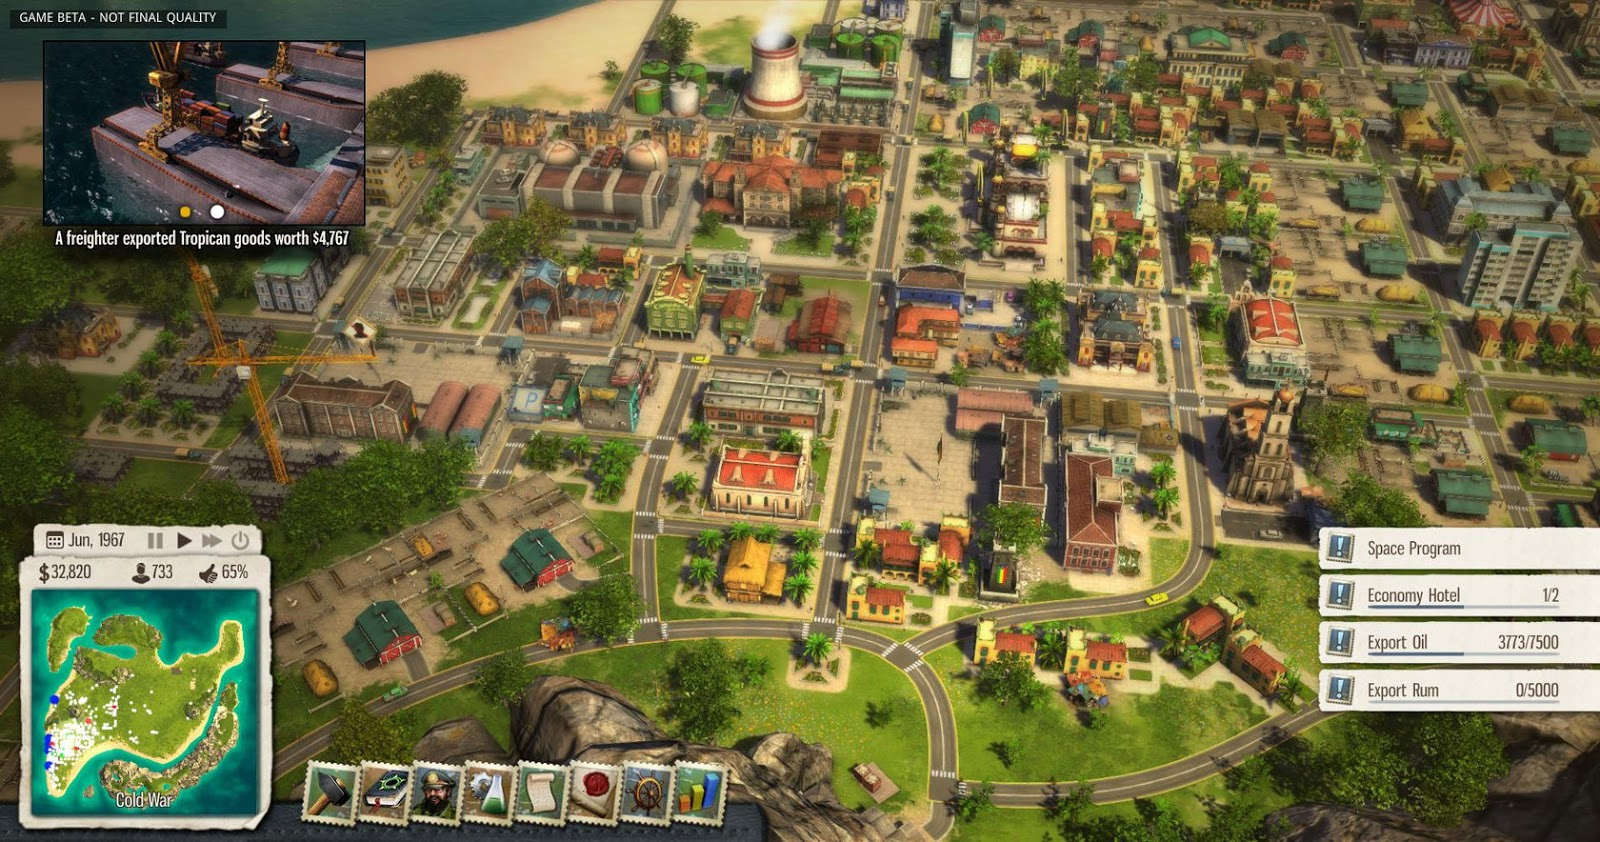 Tropico5 completecollection - Tropico 5 Complete Collection PC